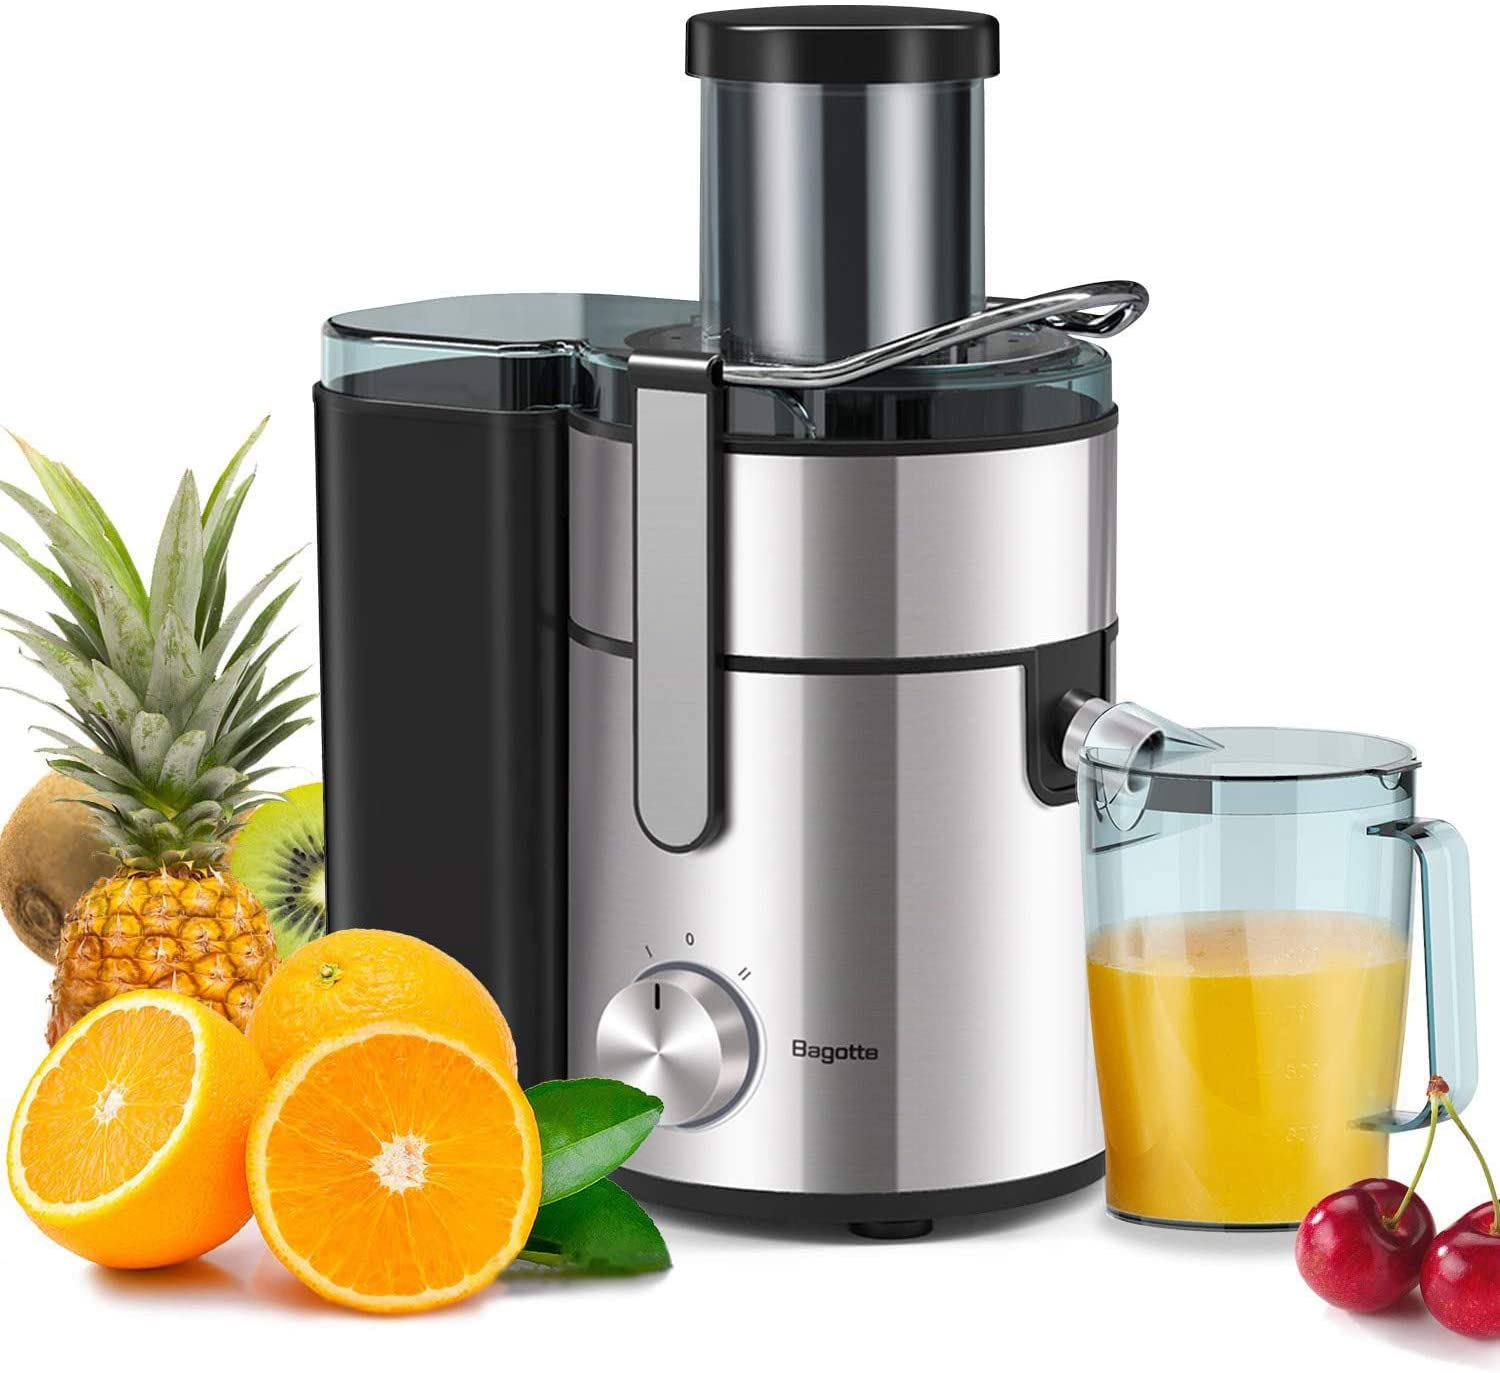 Bagotte Large Juicer Machines, 1000W, 85mm Wide Mouth Centrifugal Juicers Easy Clean Juice Extractor for Whole Fruit Vegetable, Juicer Recipe Book &